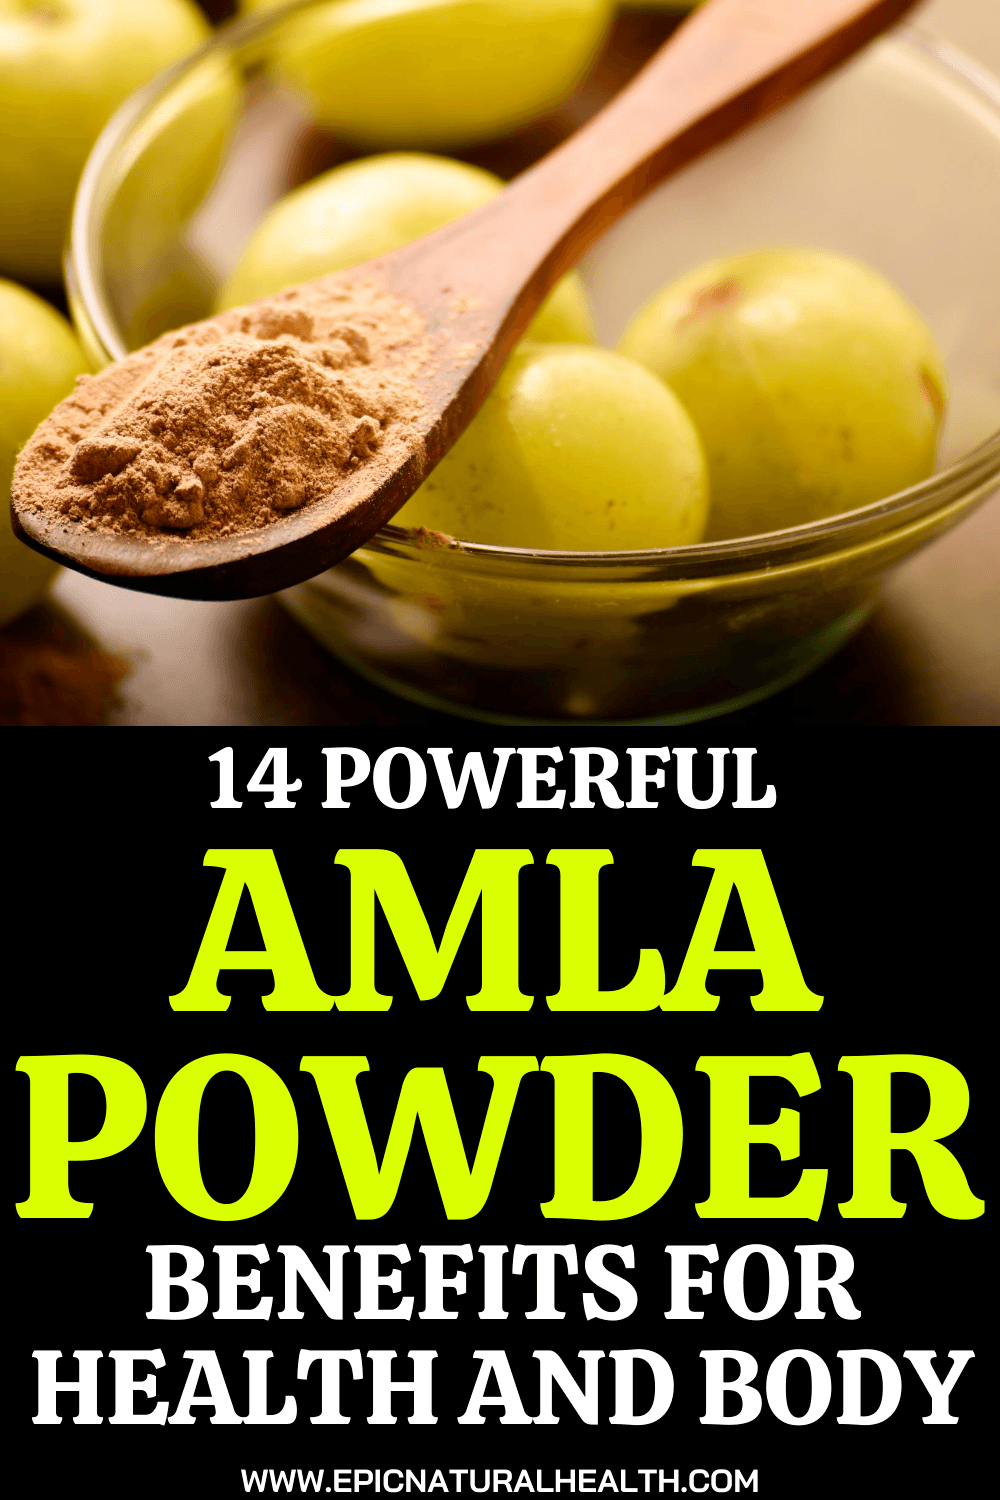 14 Powerful Amla Powder Benefits for Health and Body